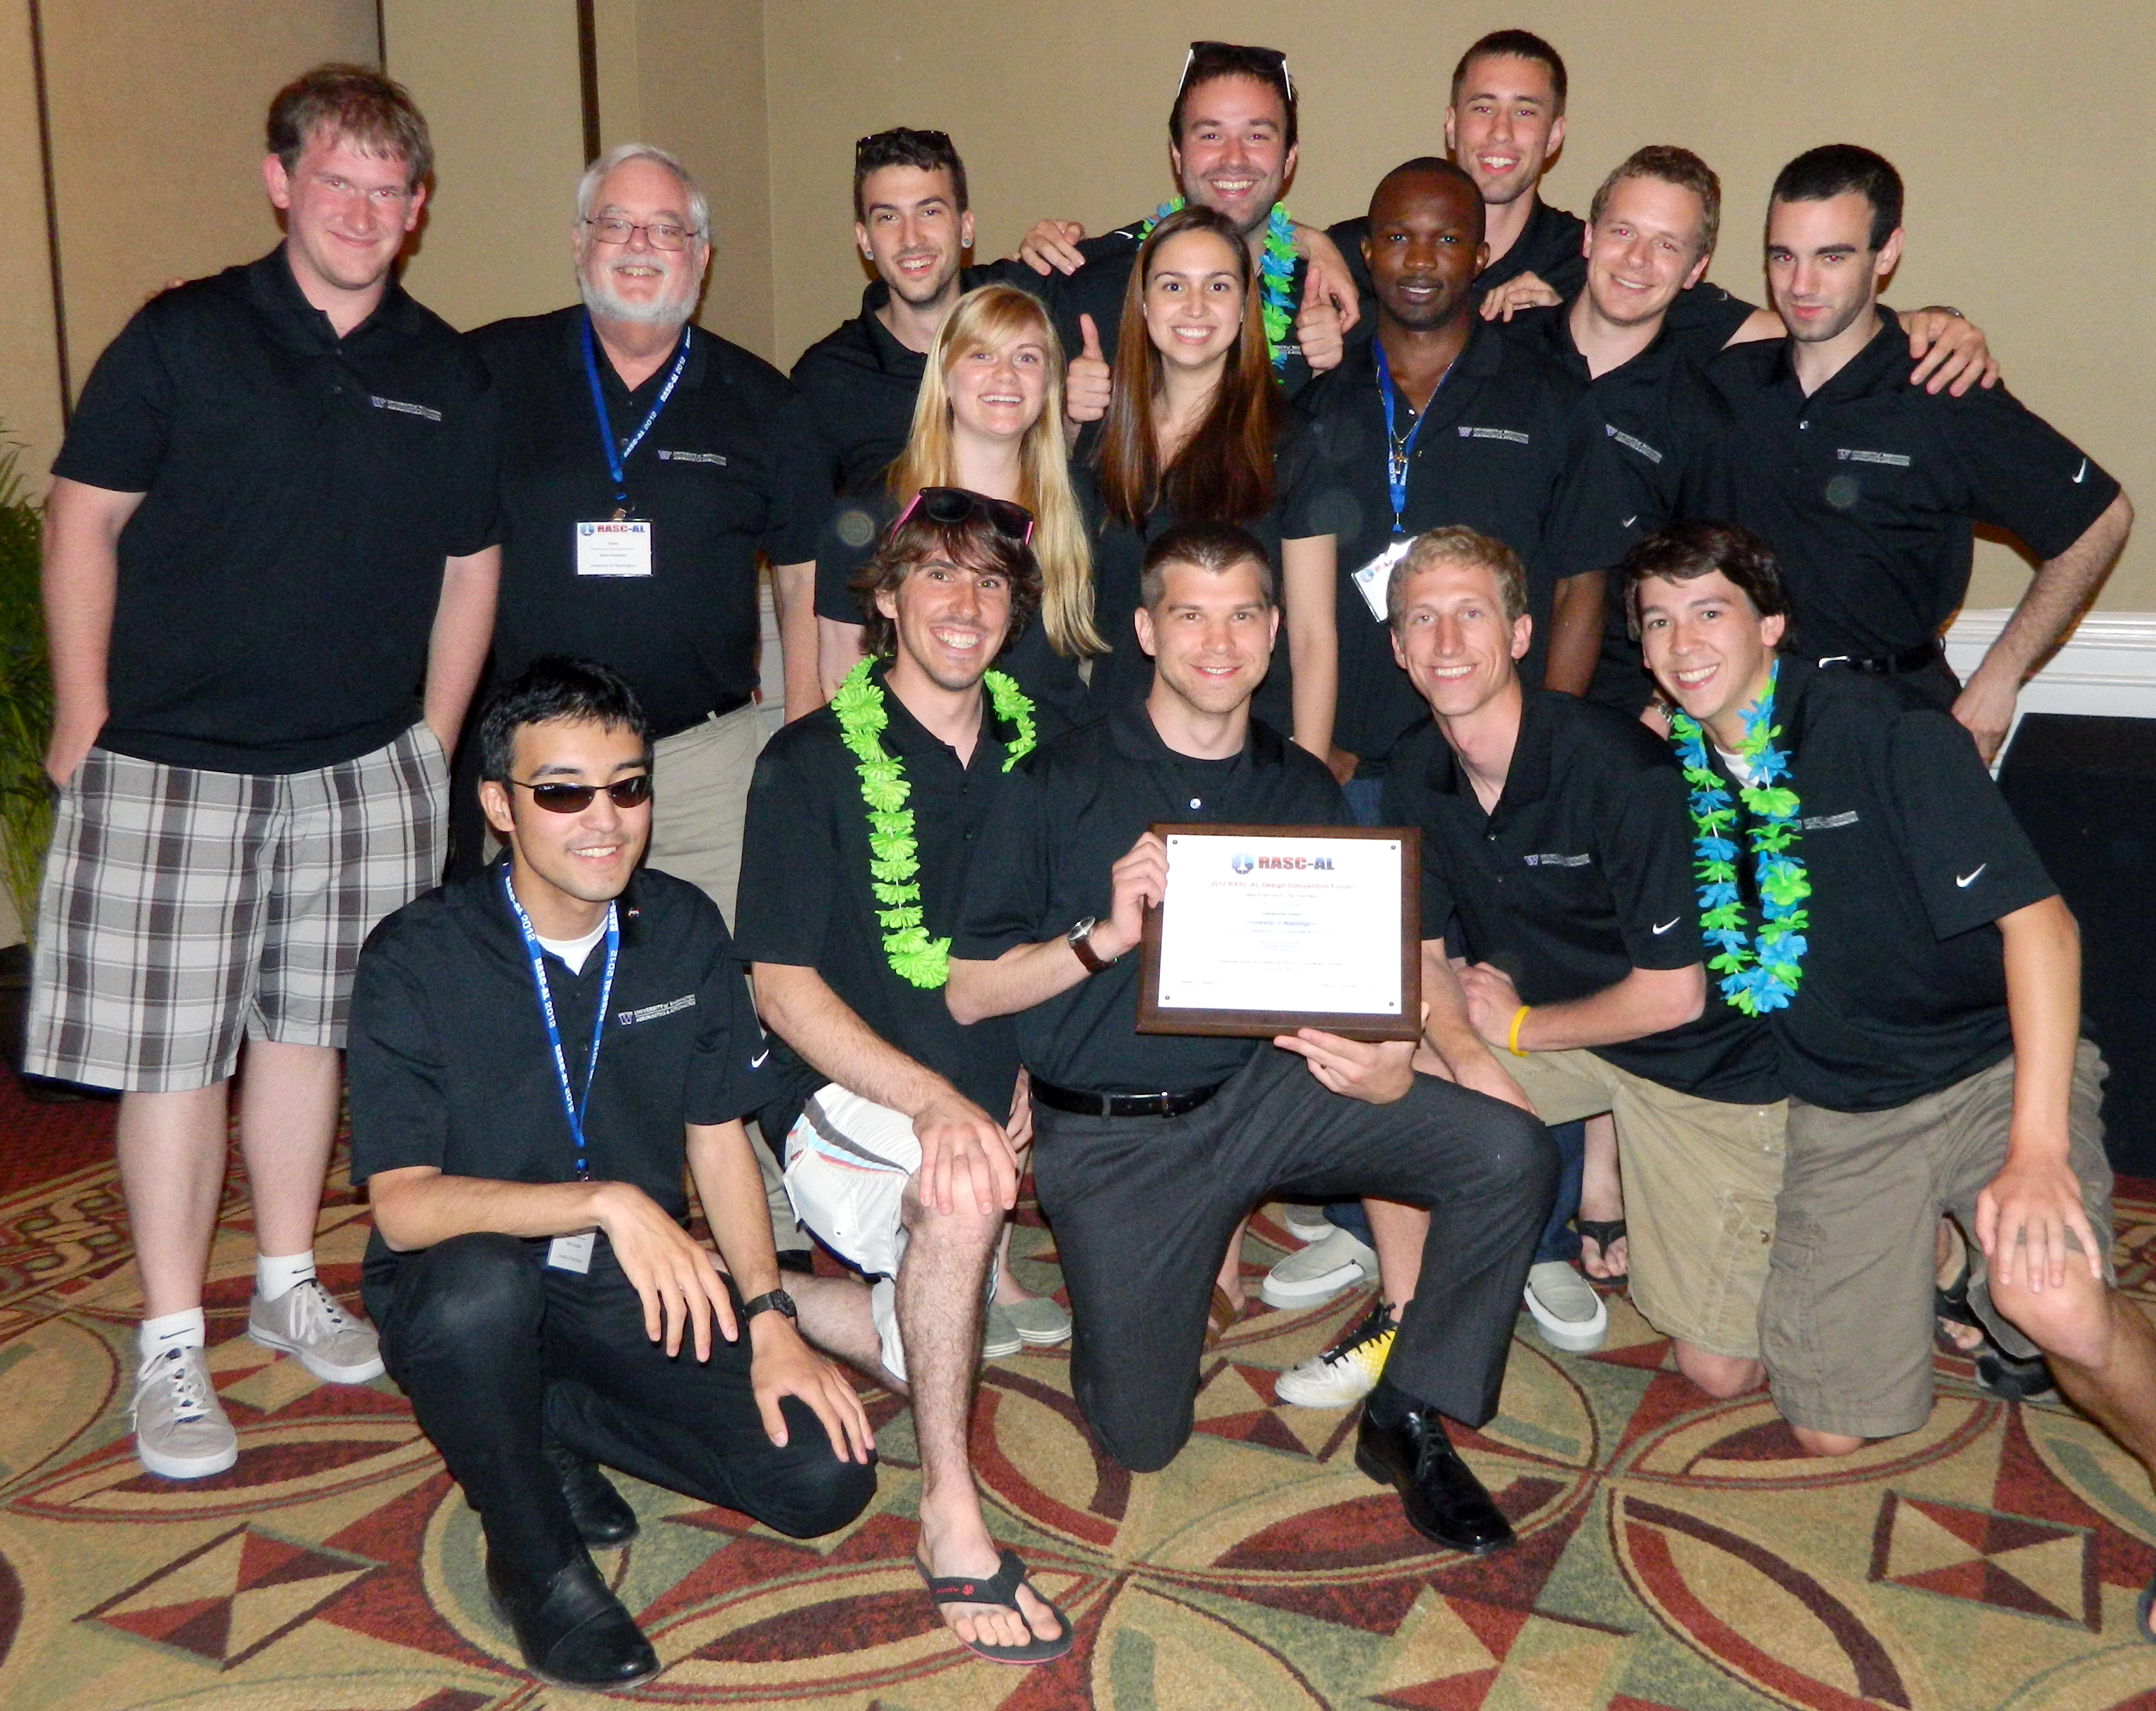 Thirteen UW seniors traveled to Florida for the contest. Standing on the left are teaching assistant Mike Hughes, a UW graduate student in aeronautics and astronautics, and instructor Dana Andrews.